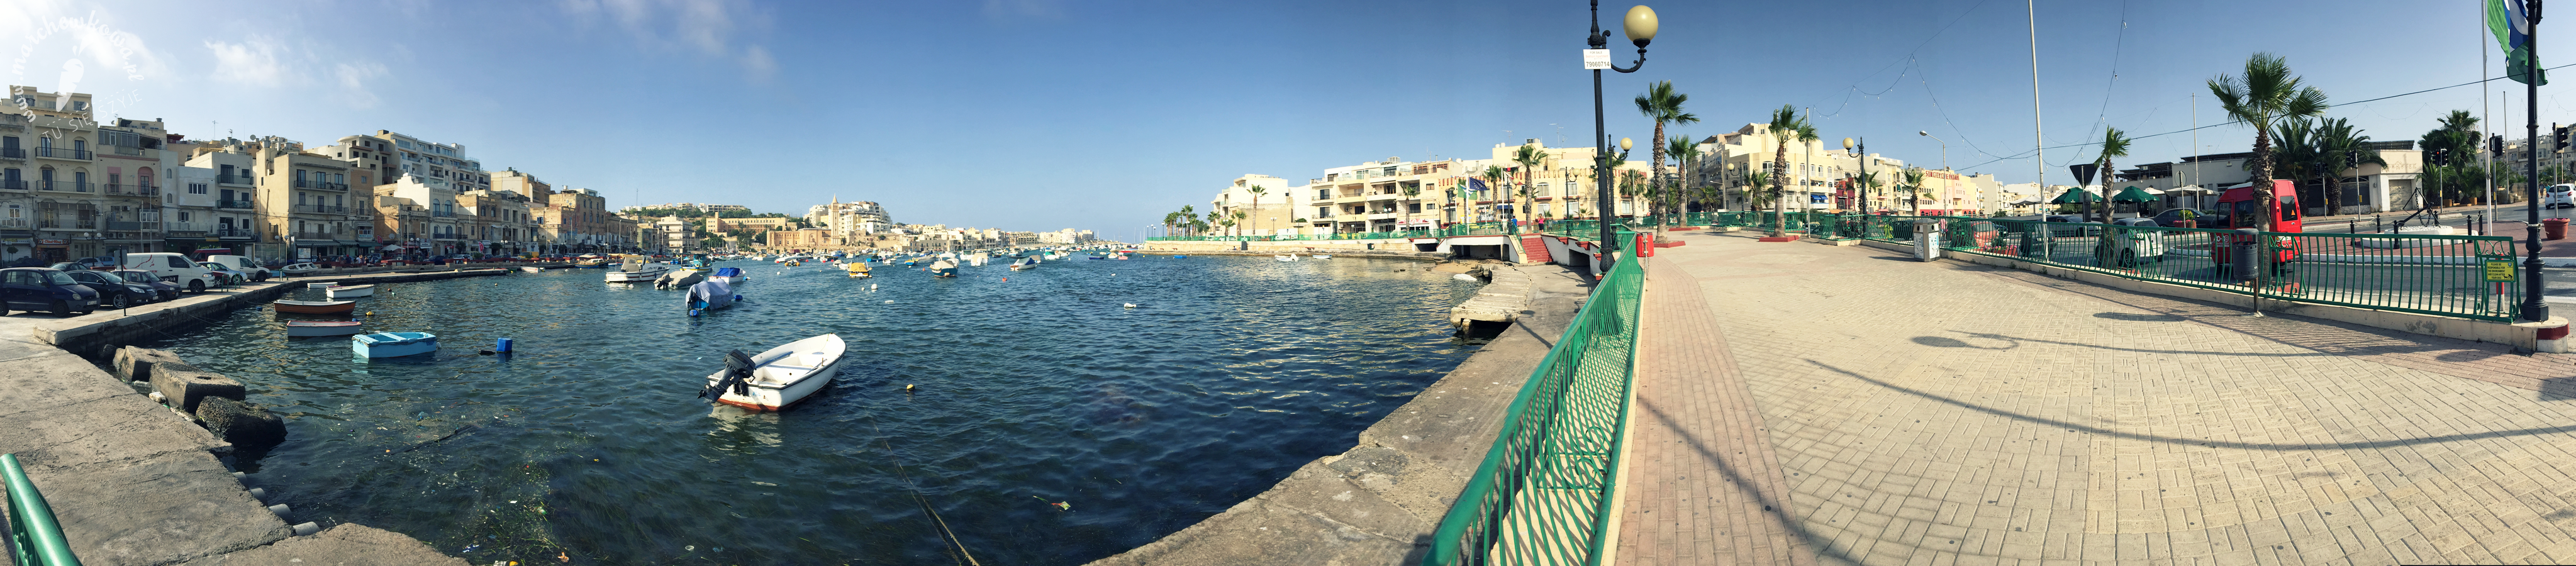 Malta June/July 2015, Marsaskala, bay, boats, summer, vacation